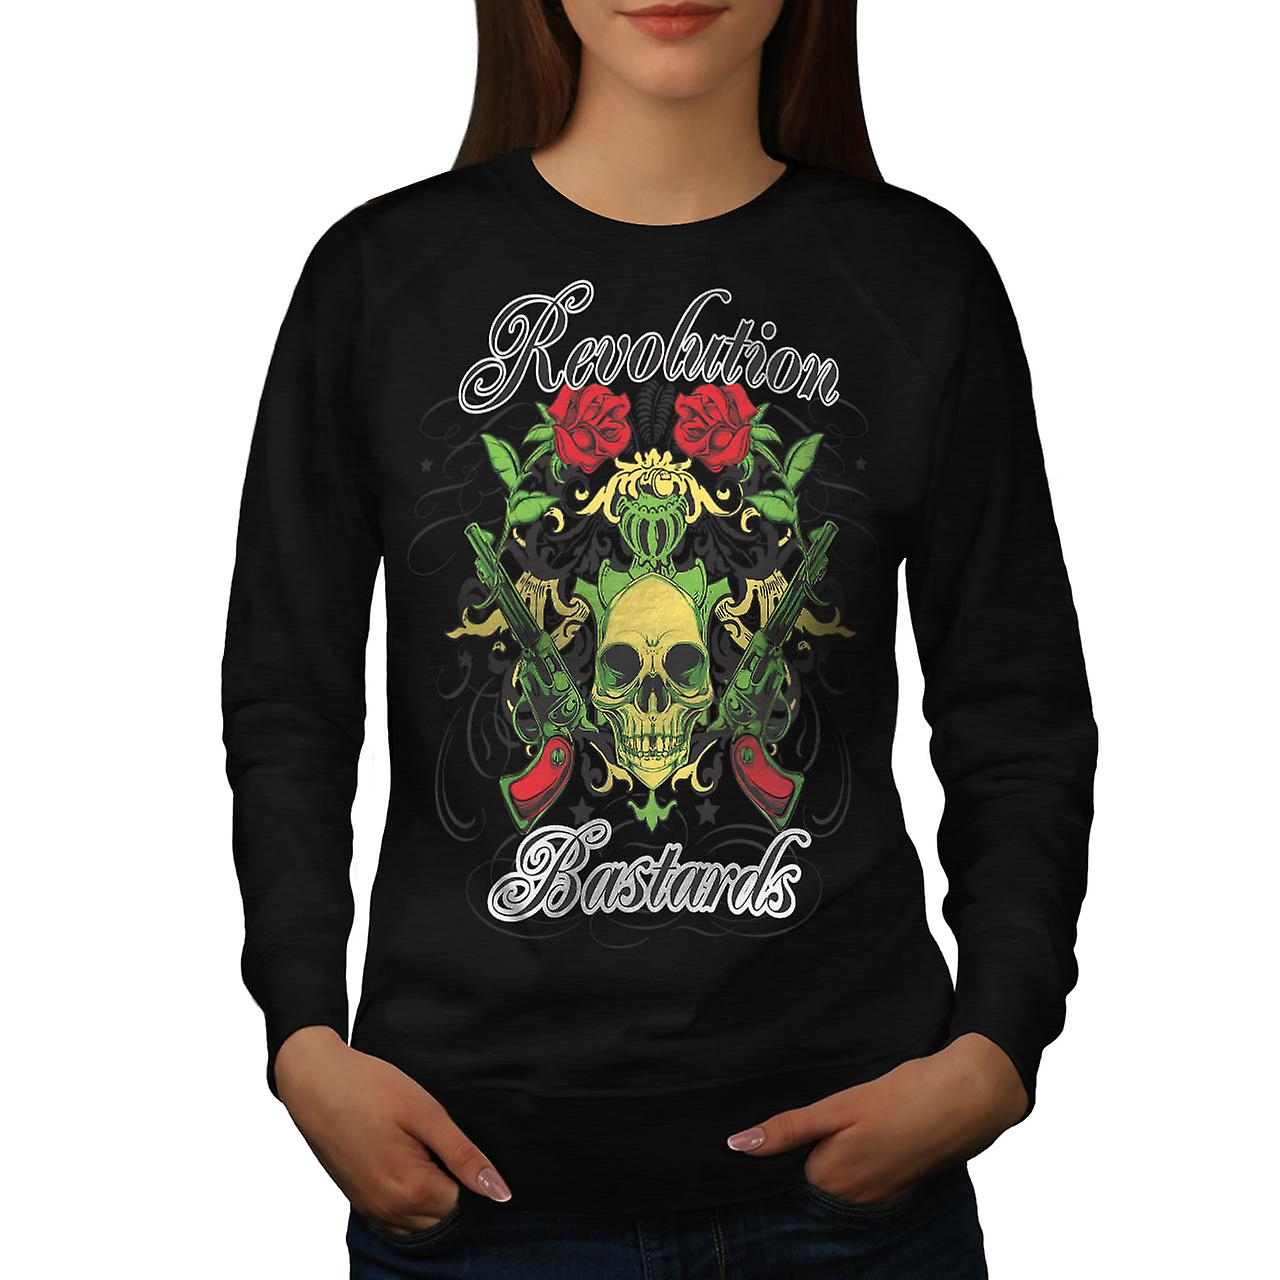 Revolution Bastards Roses Guns Women Black Sweatshirt | Wellcoda